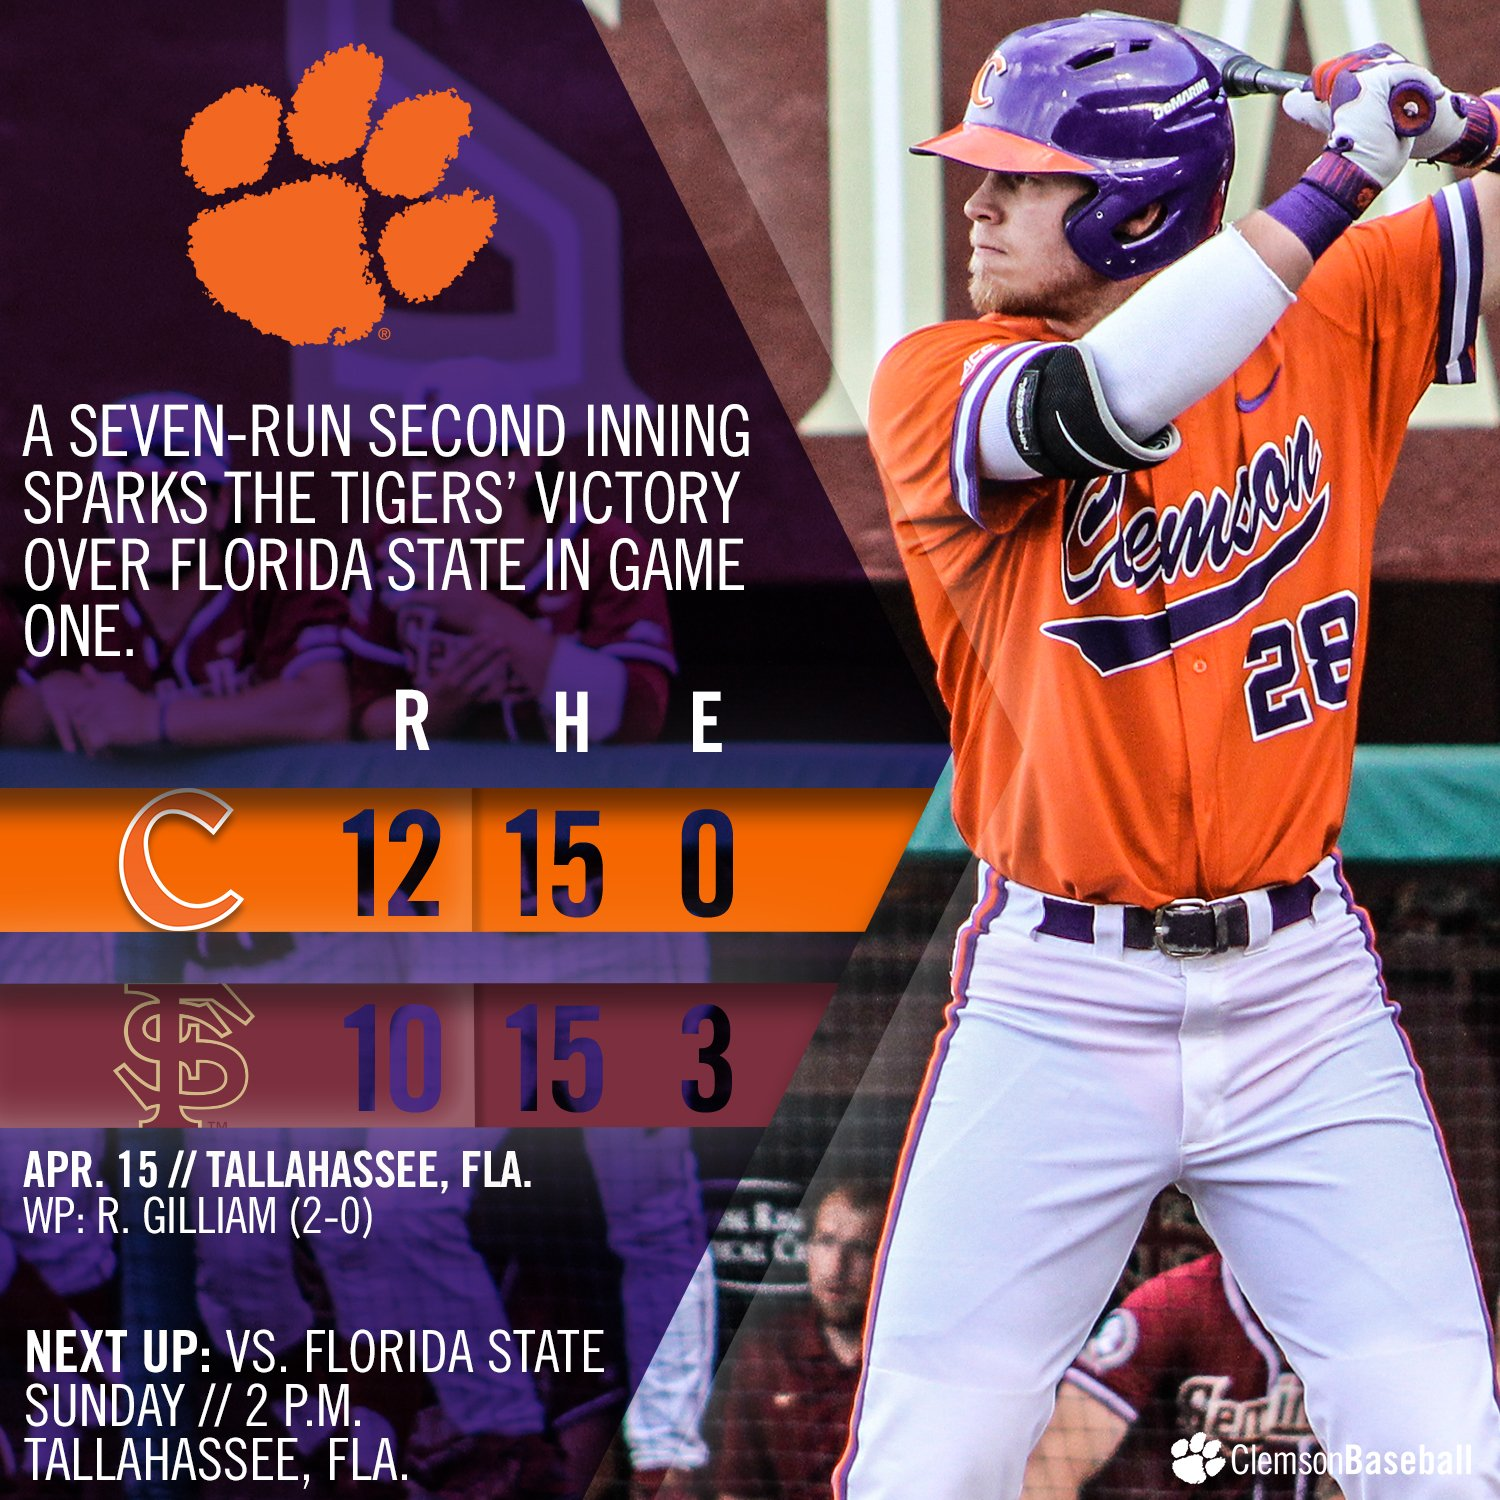 FINAL: #Clemson hangs on to take down Florida State in game one of the series. 12-10.  STORY: https://t.co/XbIb2Xm2Ae https://t.co/pOZssUTzTr